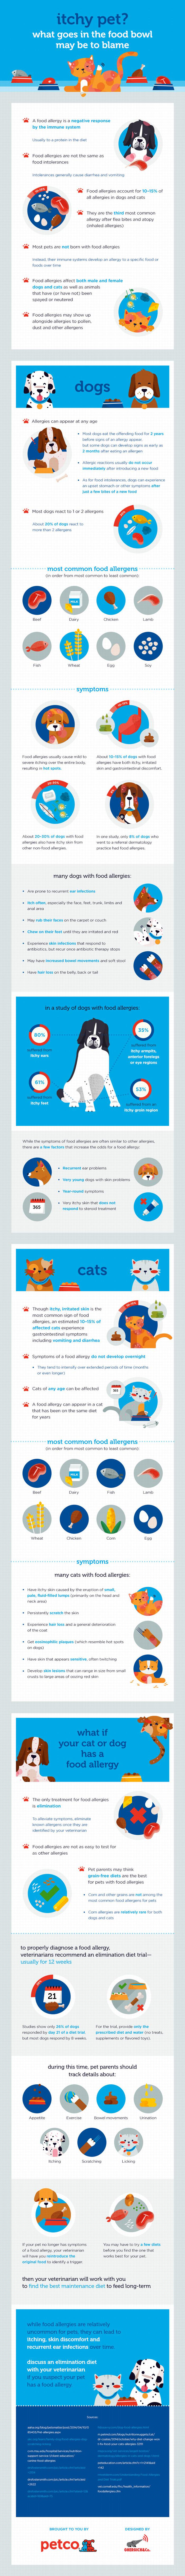 Dog Food Allergies Infographic